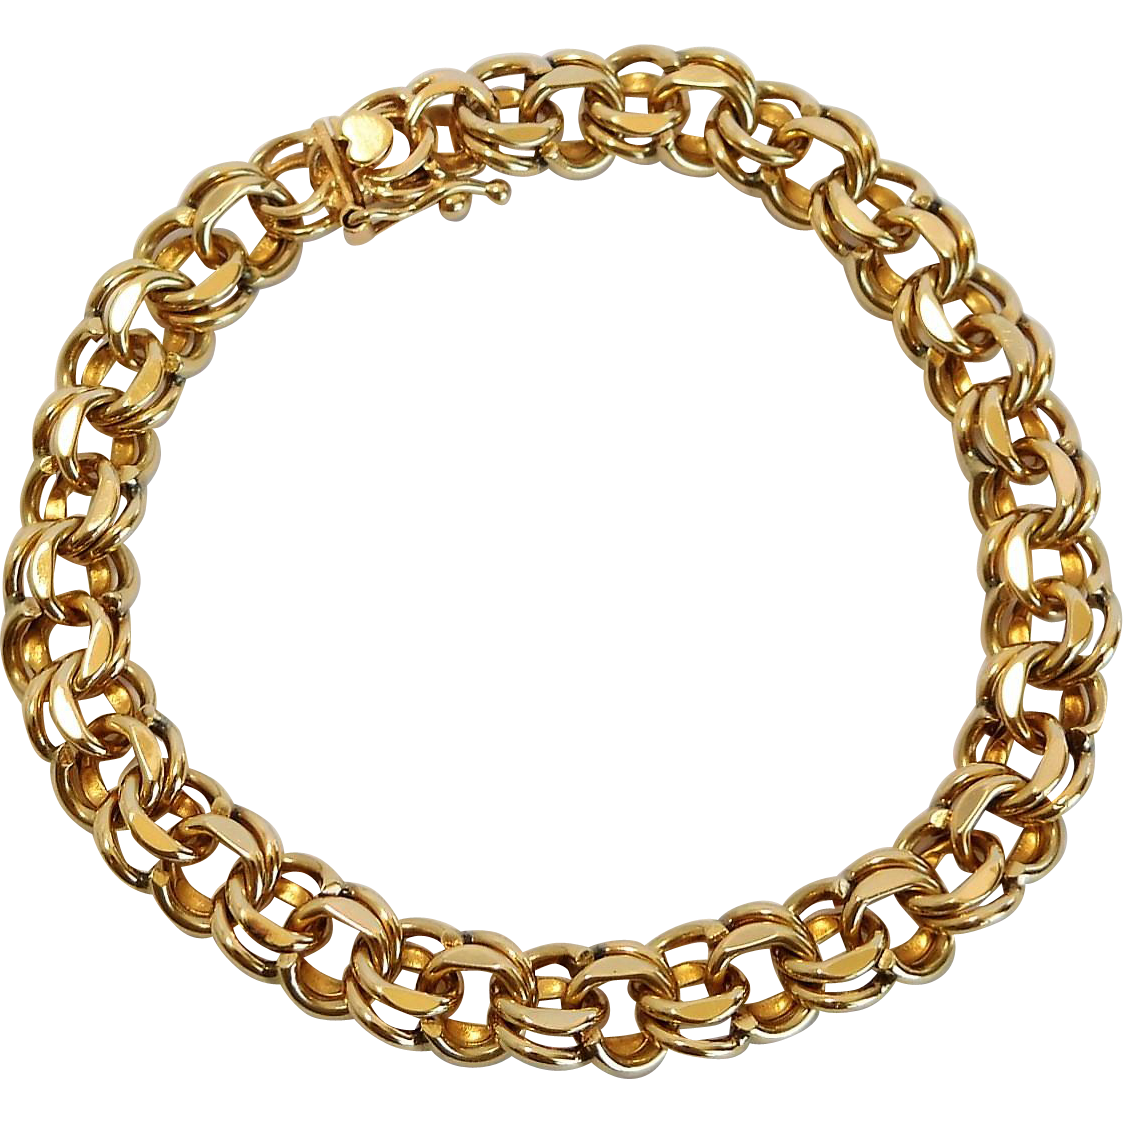 14 K gold double link charm bracelet from the 1960's